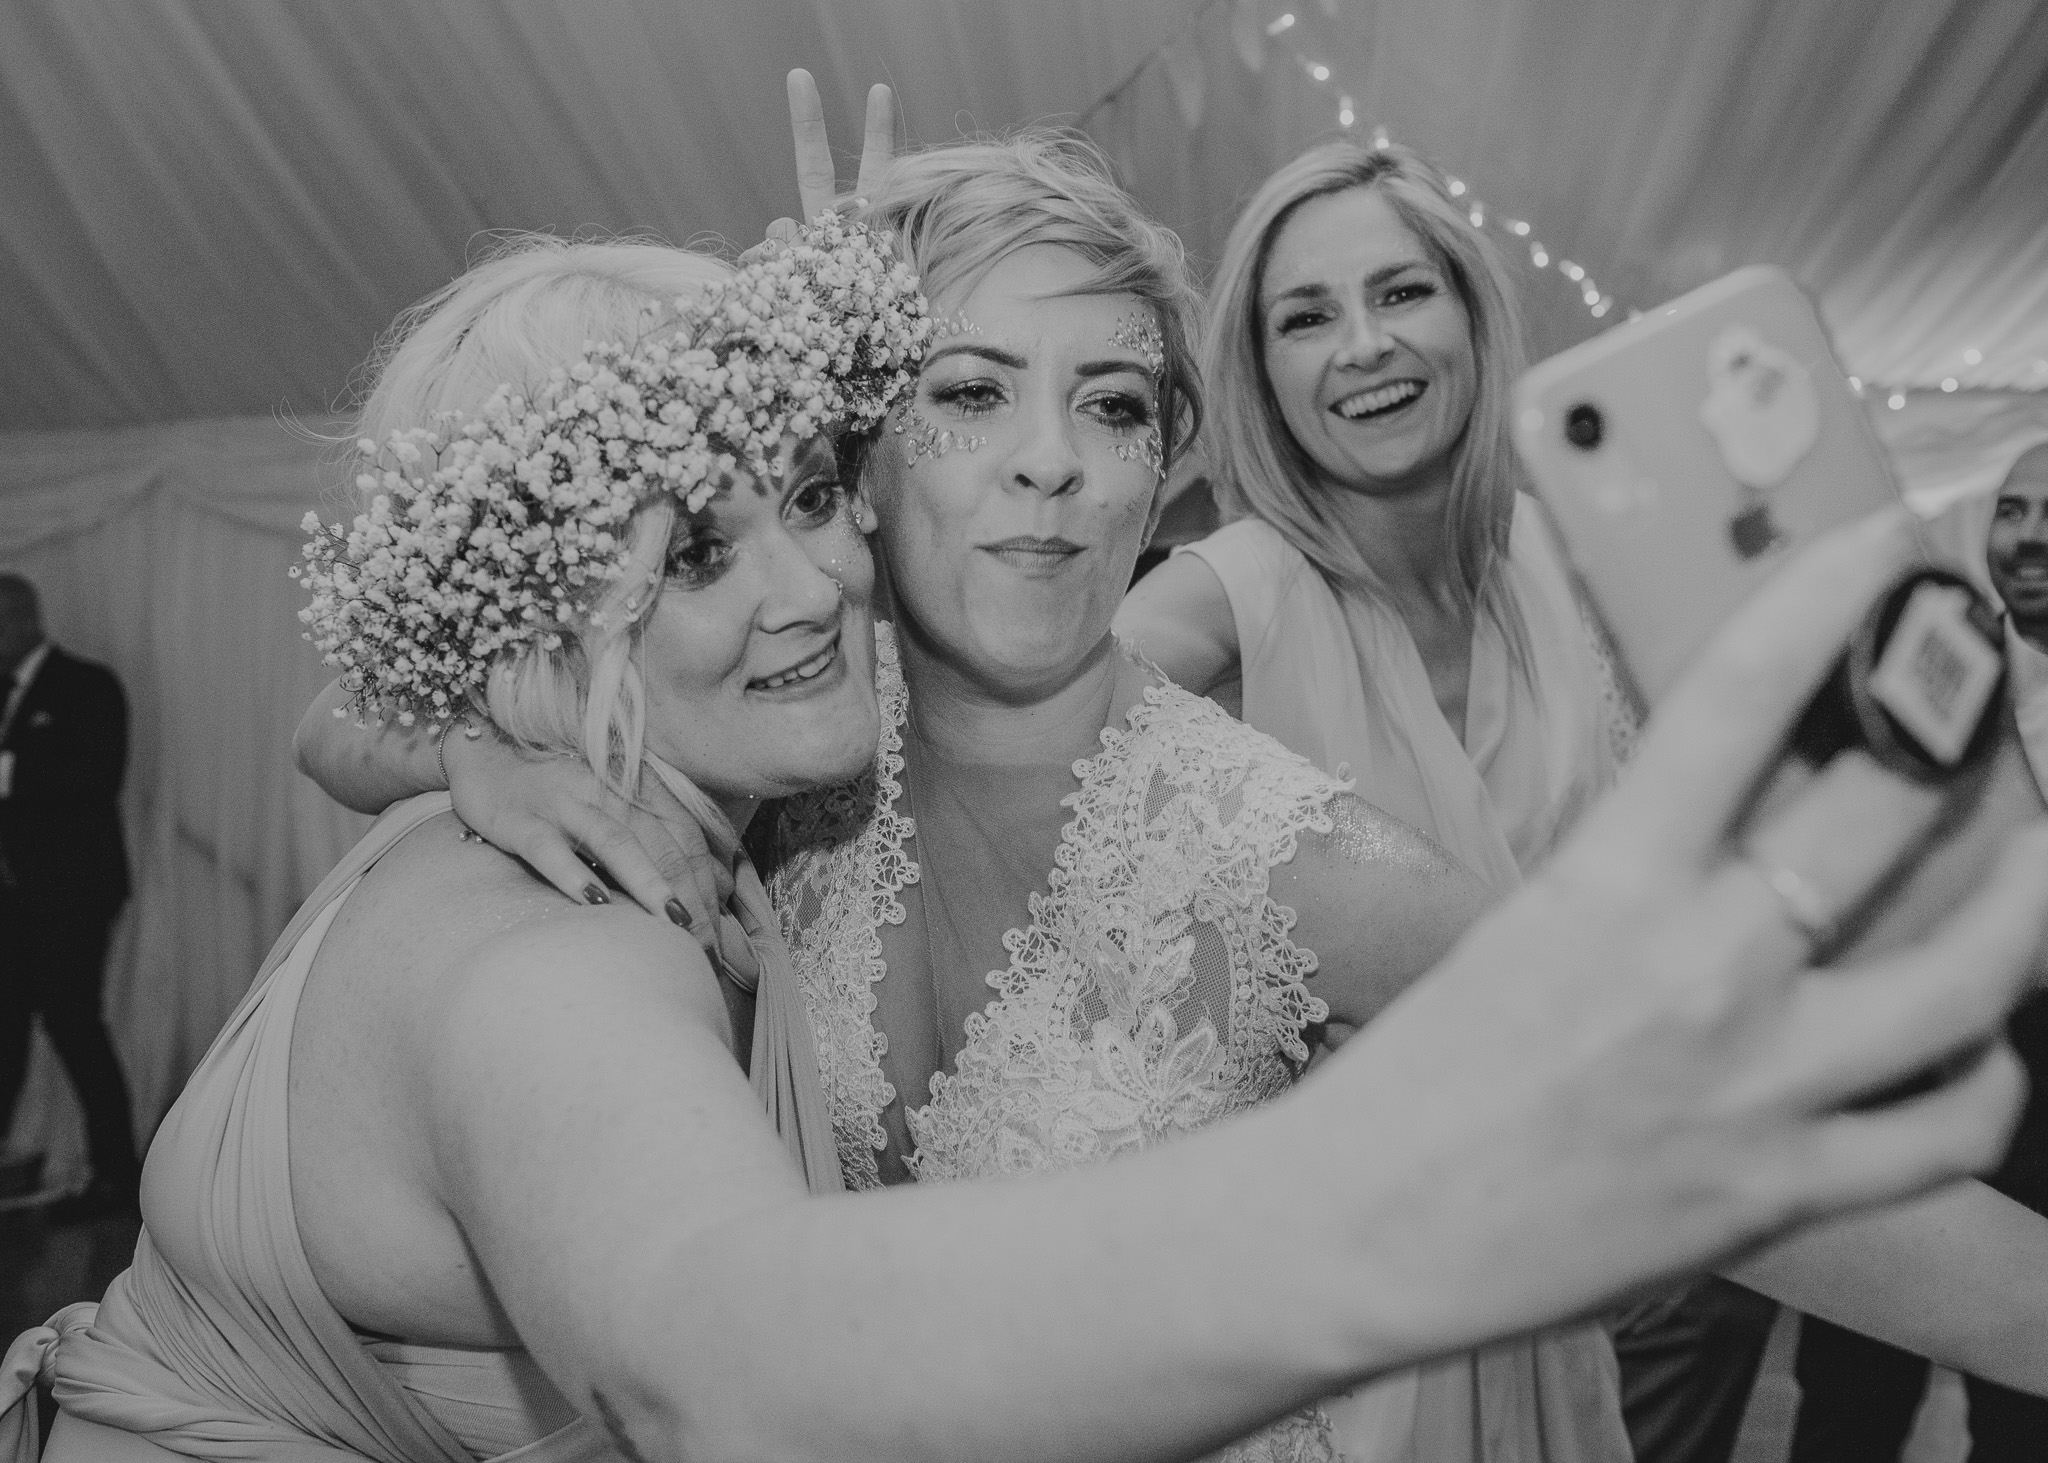 bride and bridesmaid selfie being photobombed